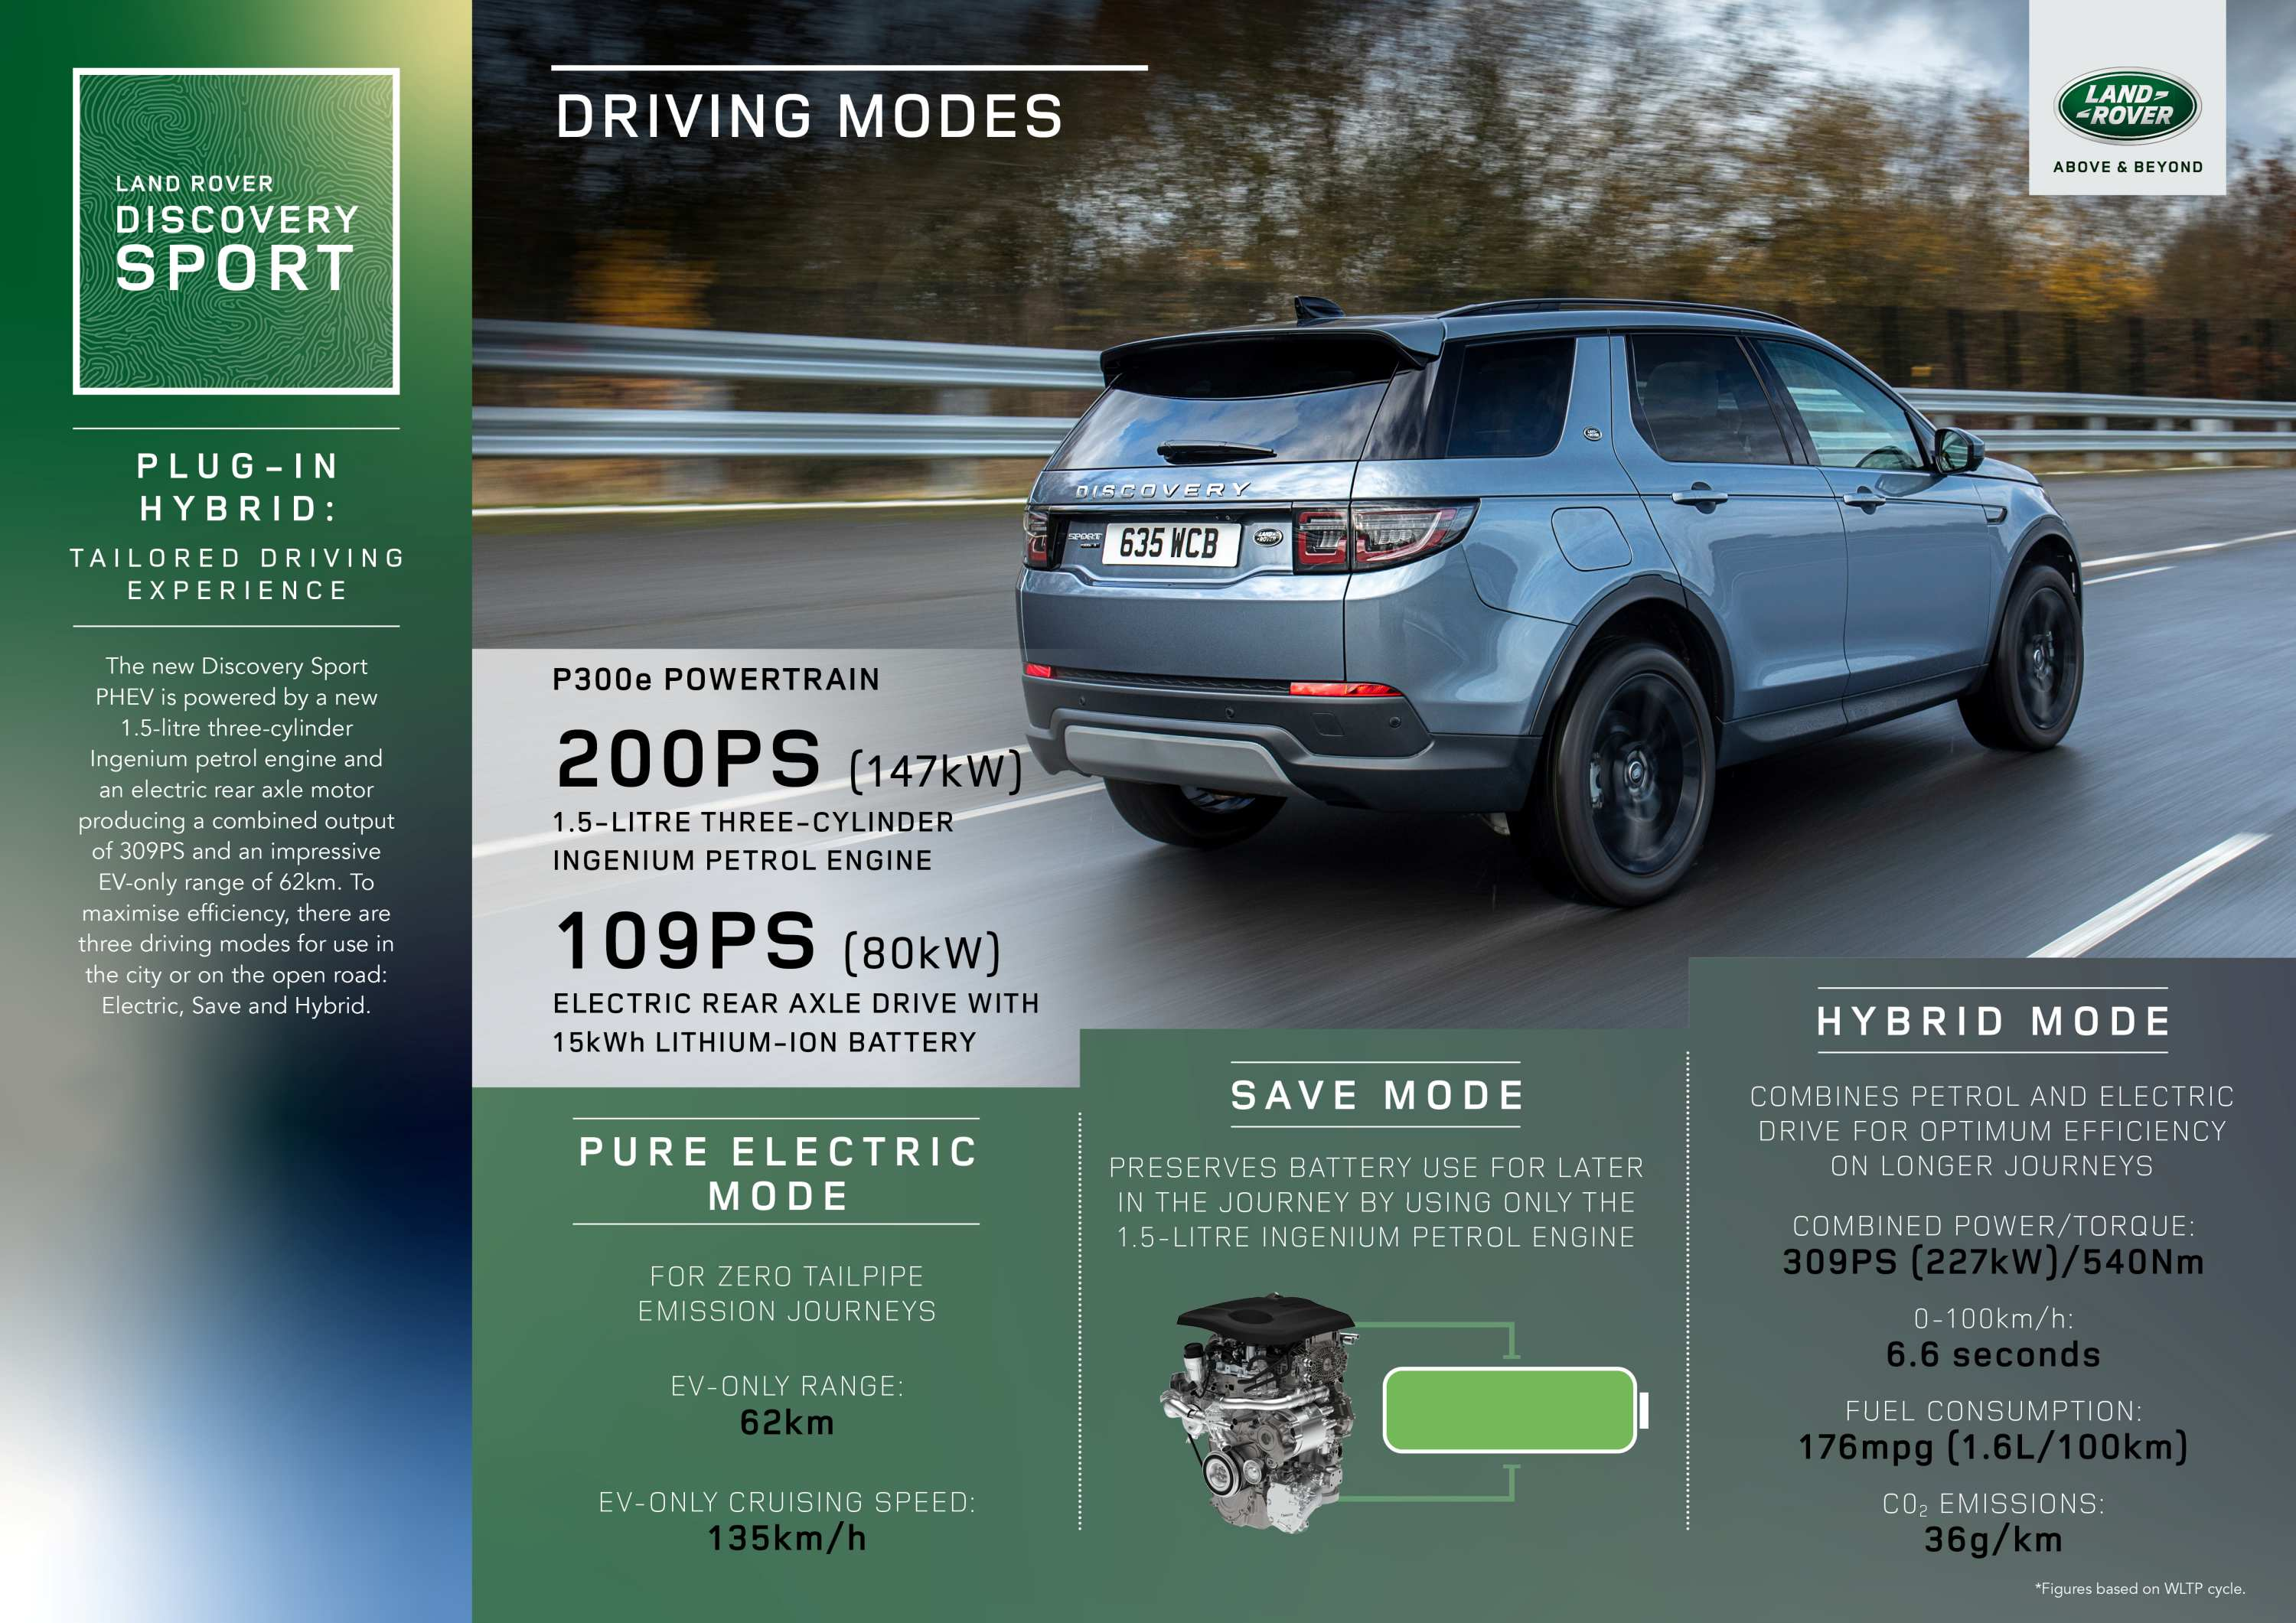 Land Rover Discovery Sport 1 Driving Modes